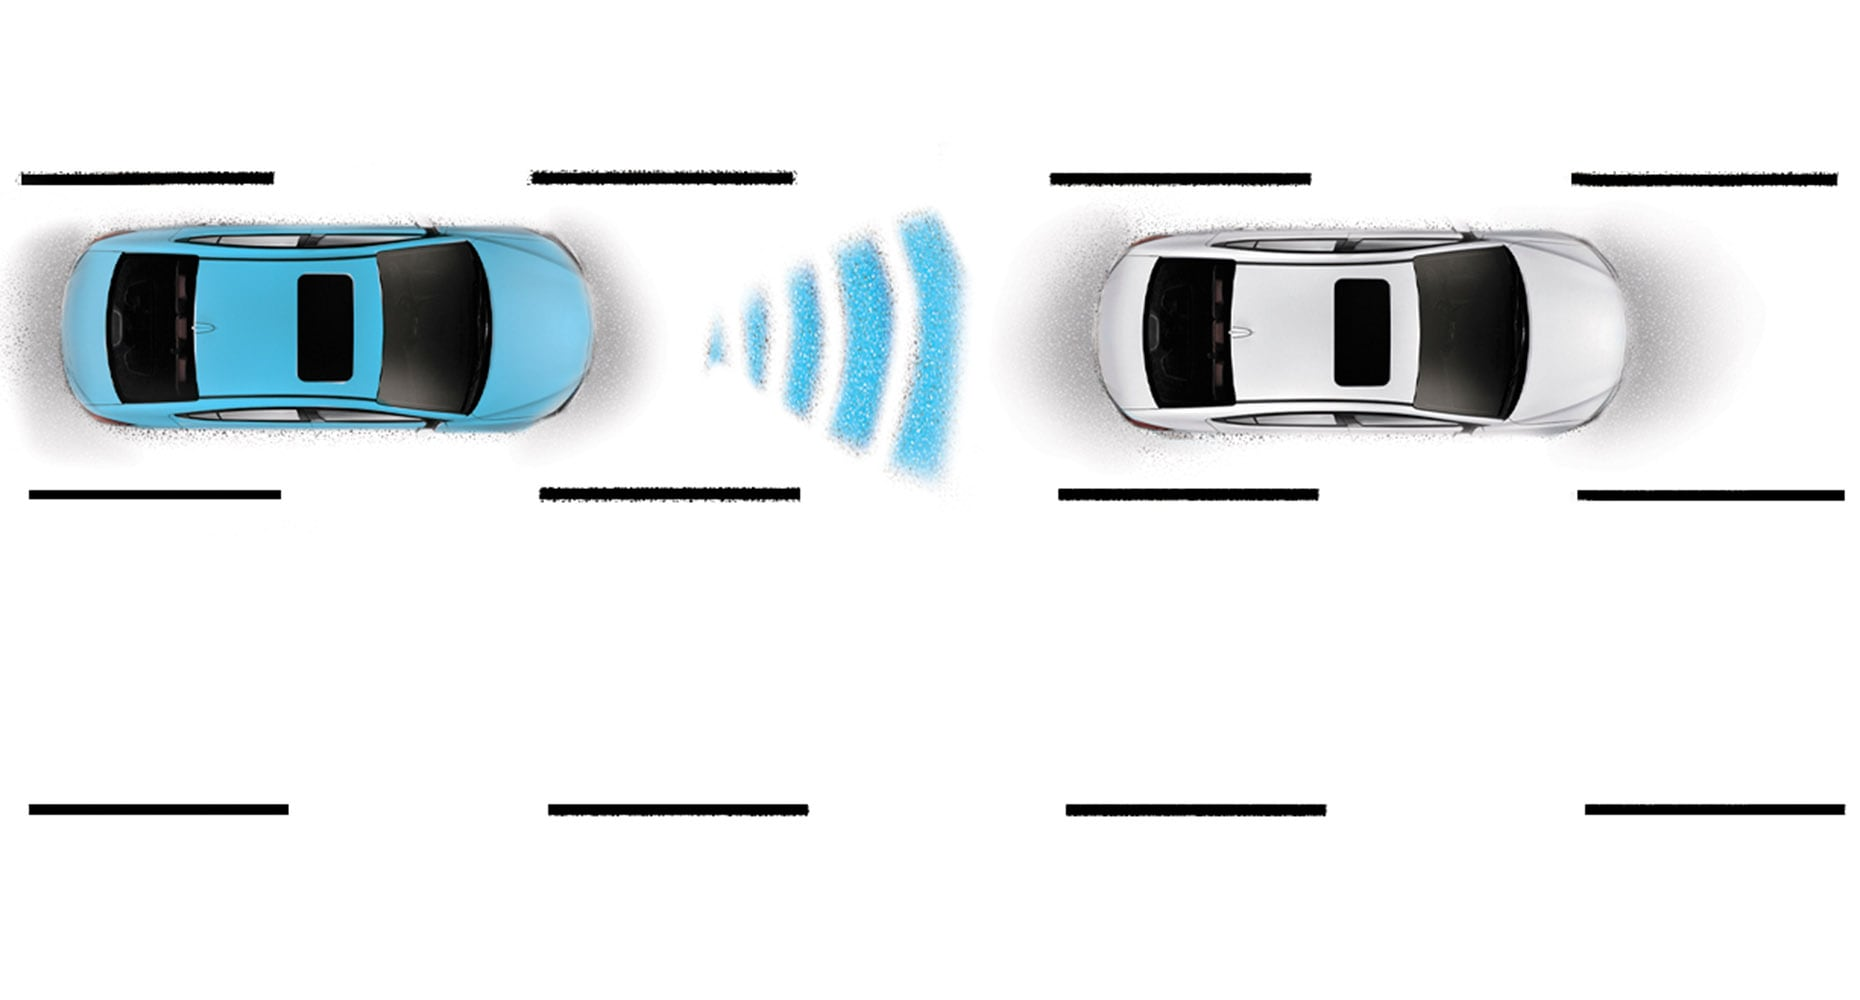 Diagram of Hyundai Elantra V3 2018 adaptive cruise control, demonstrating feature for pre-determined distance